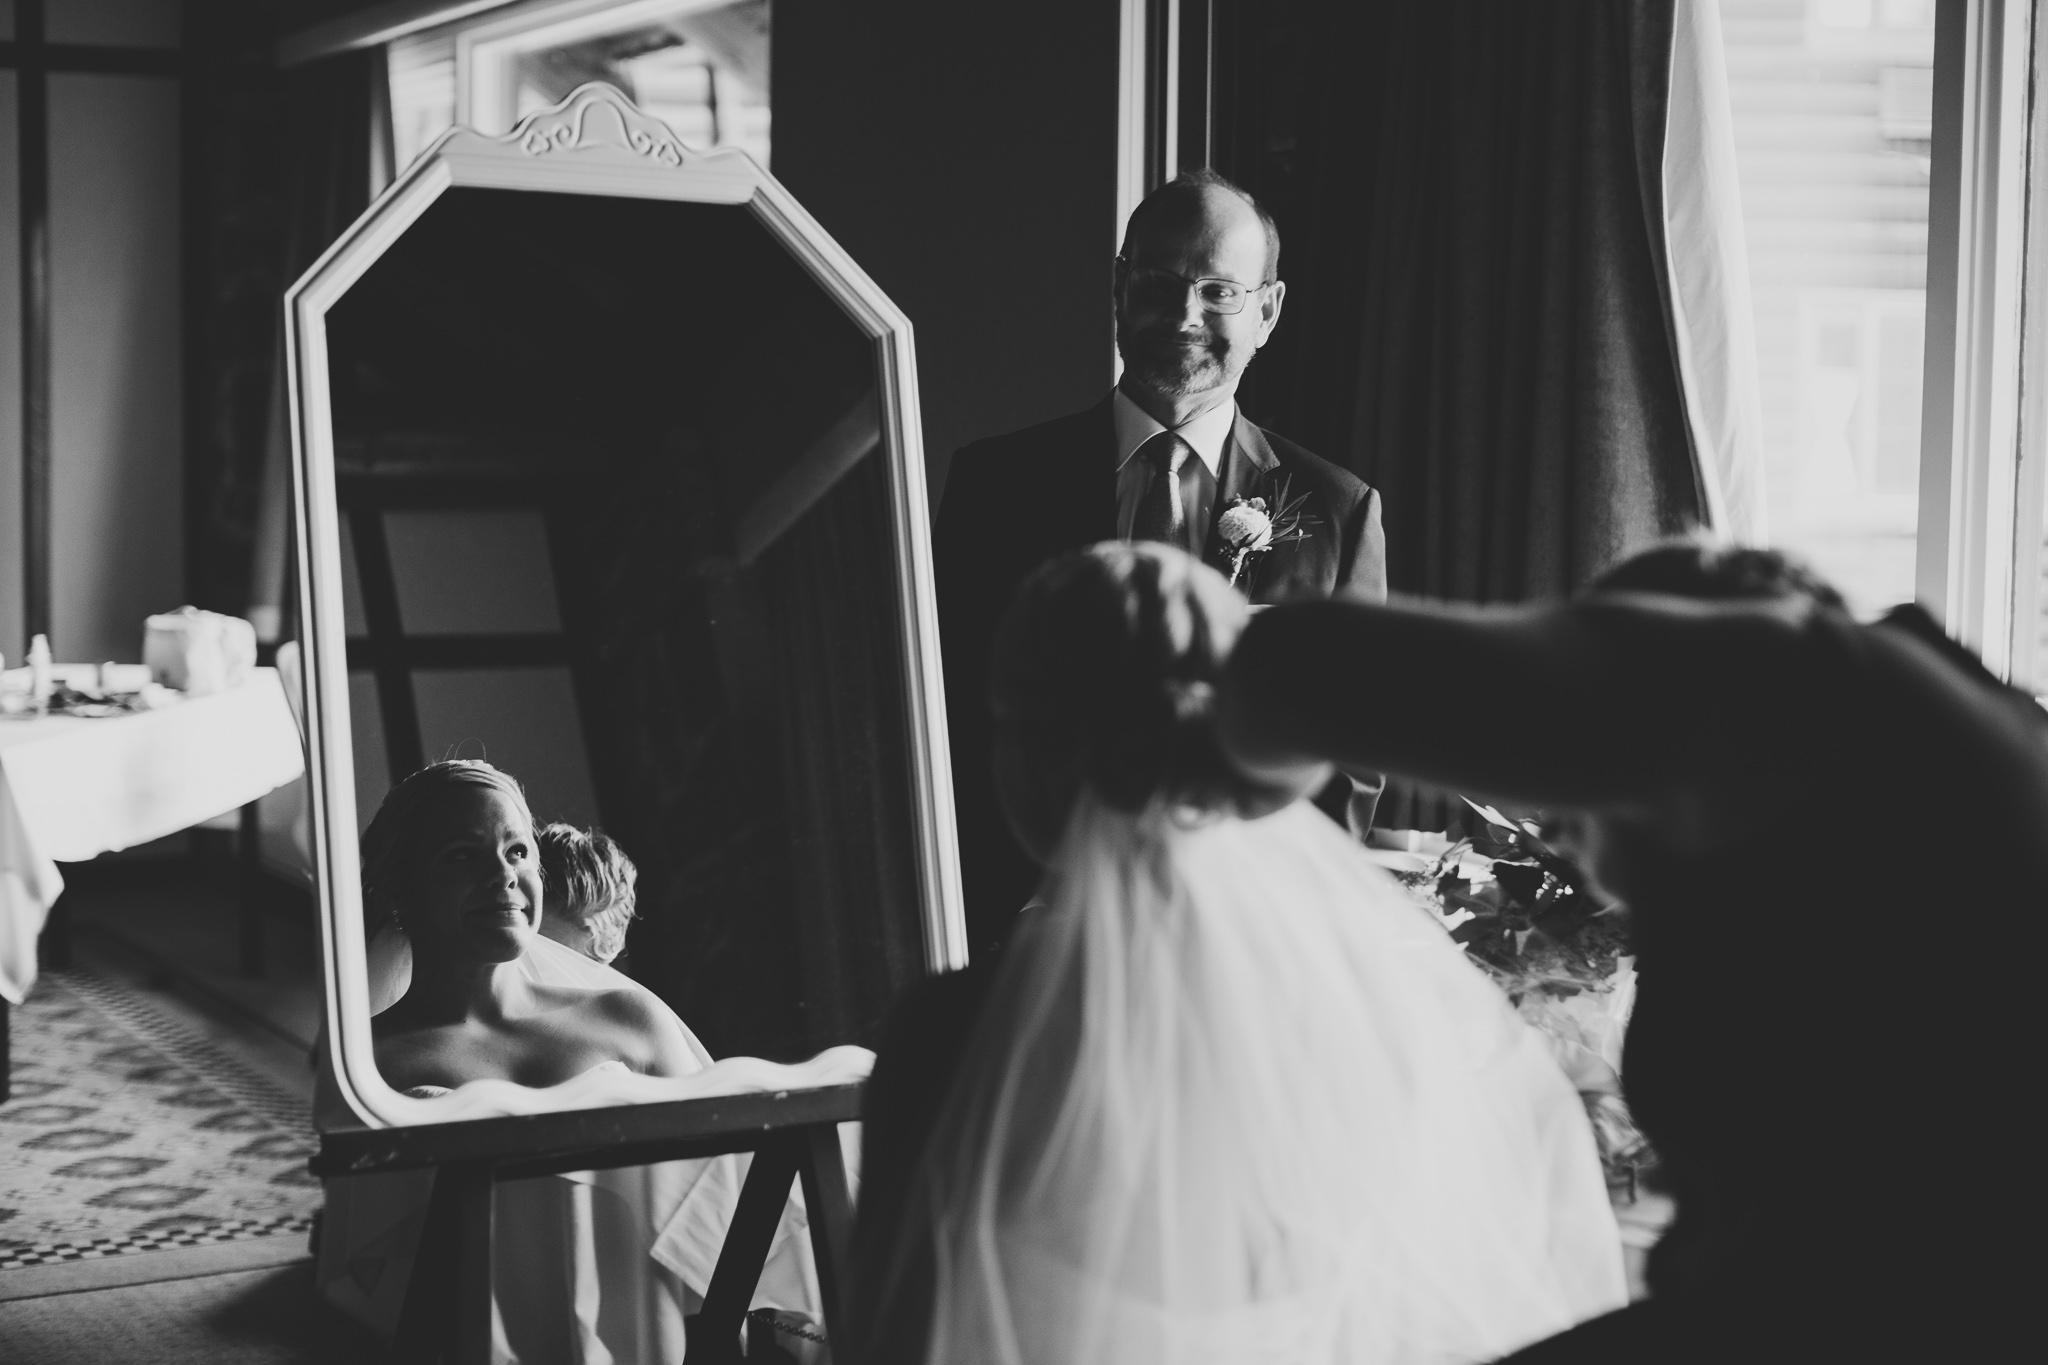 Father looking at daughter, wedding day moment